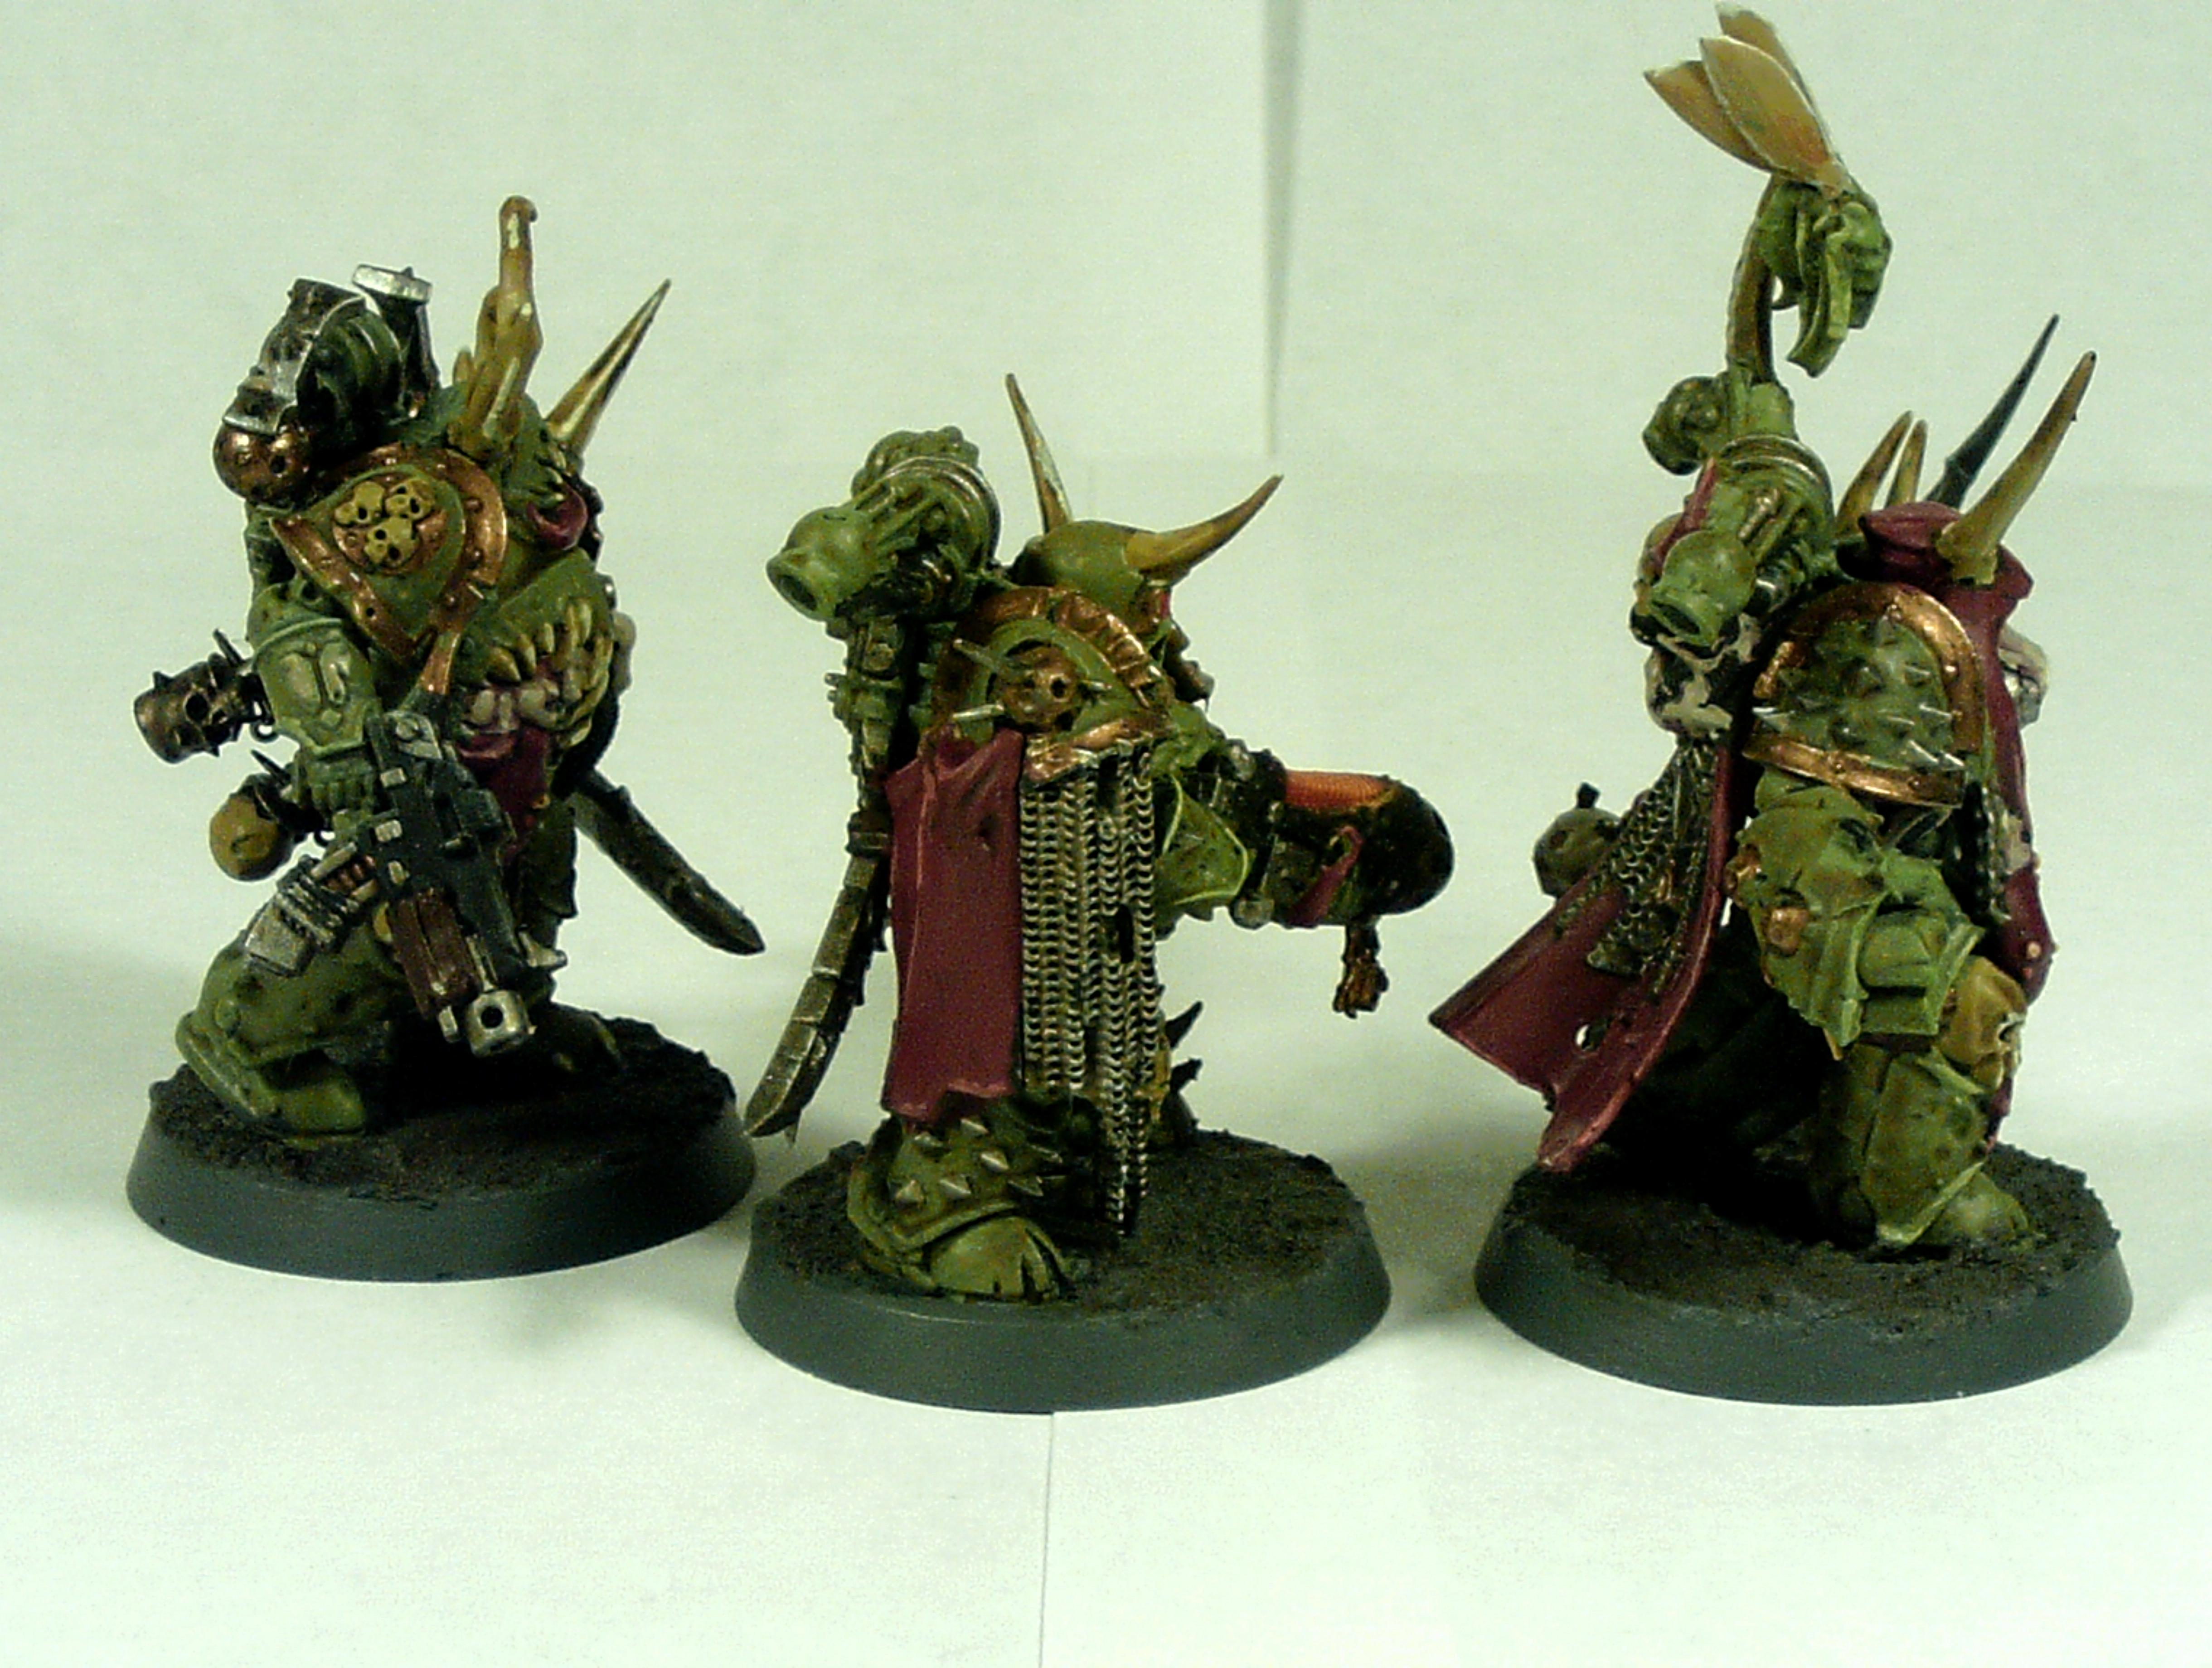 Blight, Chaos, Dark, Death, Guard, Imperium, Nurgle, Plague, Rot, Space, Space Marines